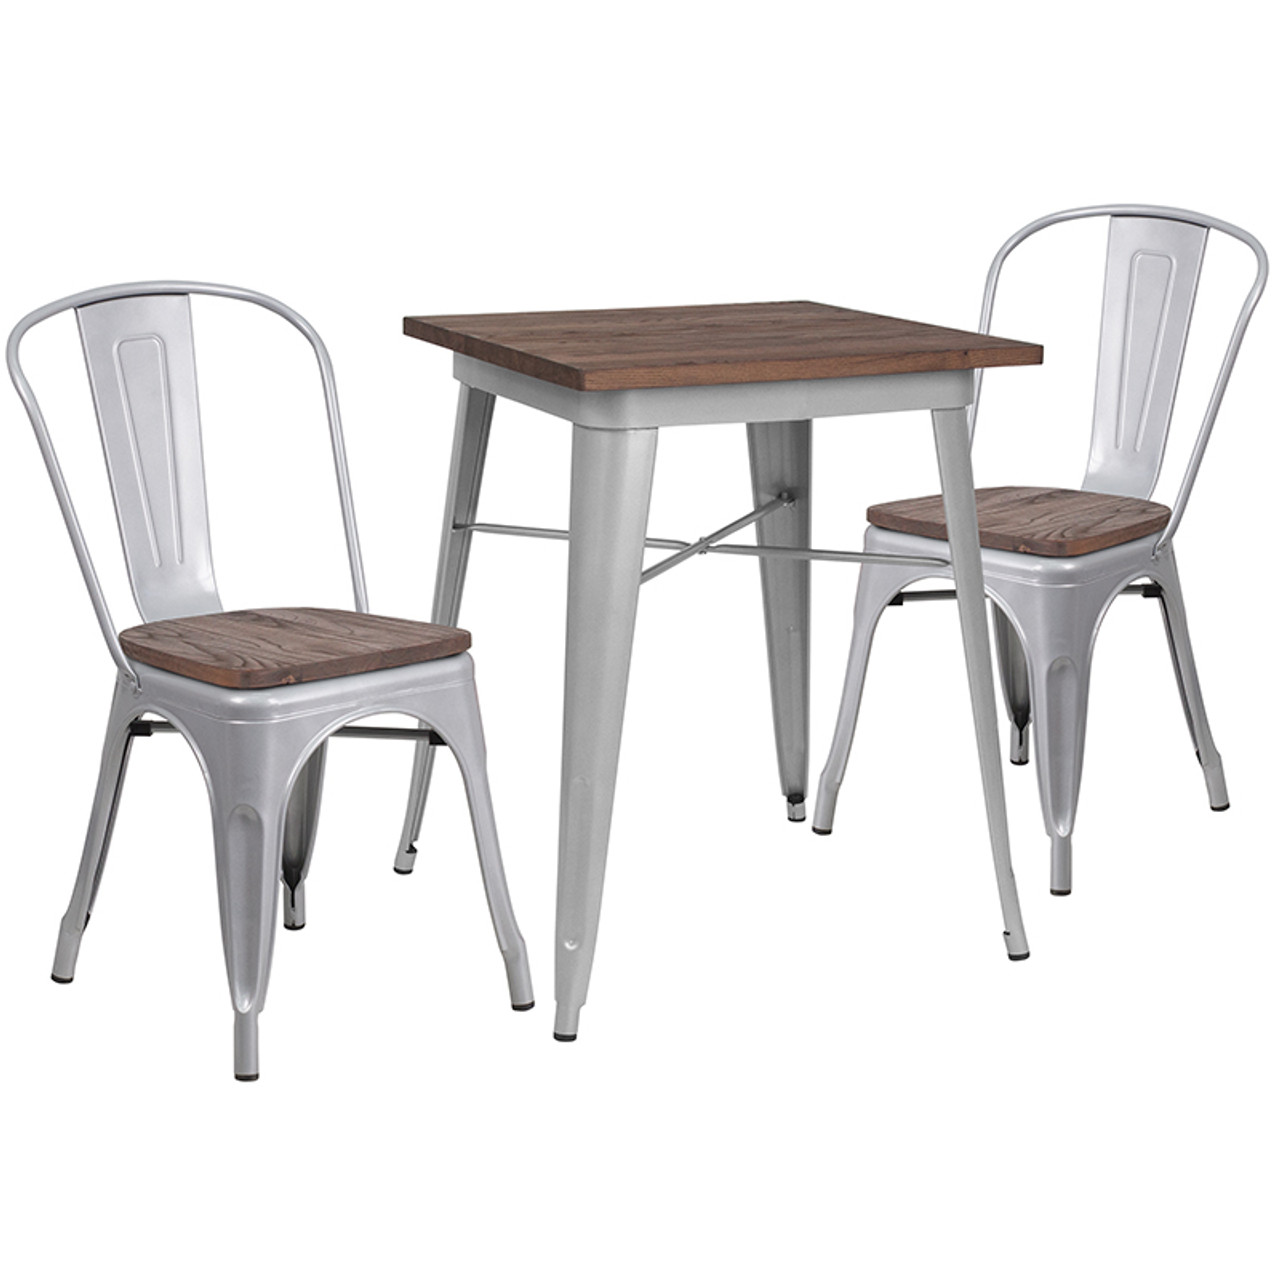 Wood Colorful Table and Chair Sets